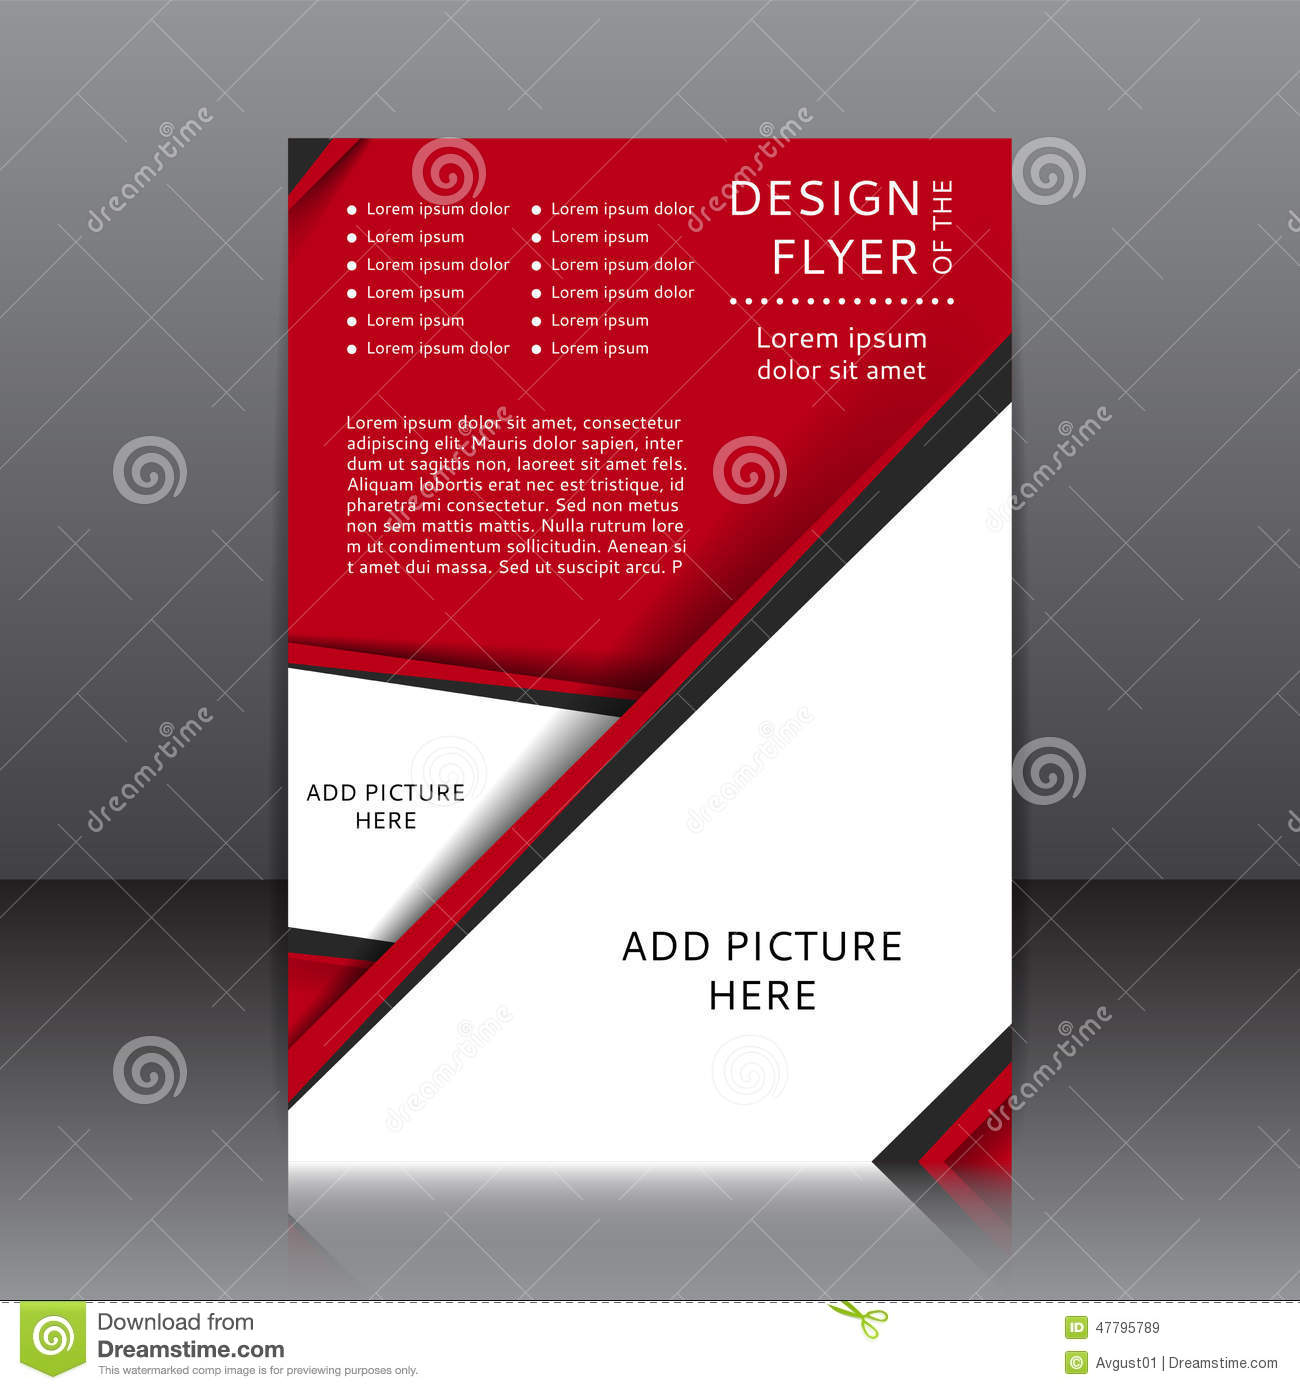 Flyer Ideas Vector Design Of The Red Flyer With Black Elements And Places For